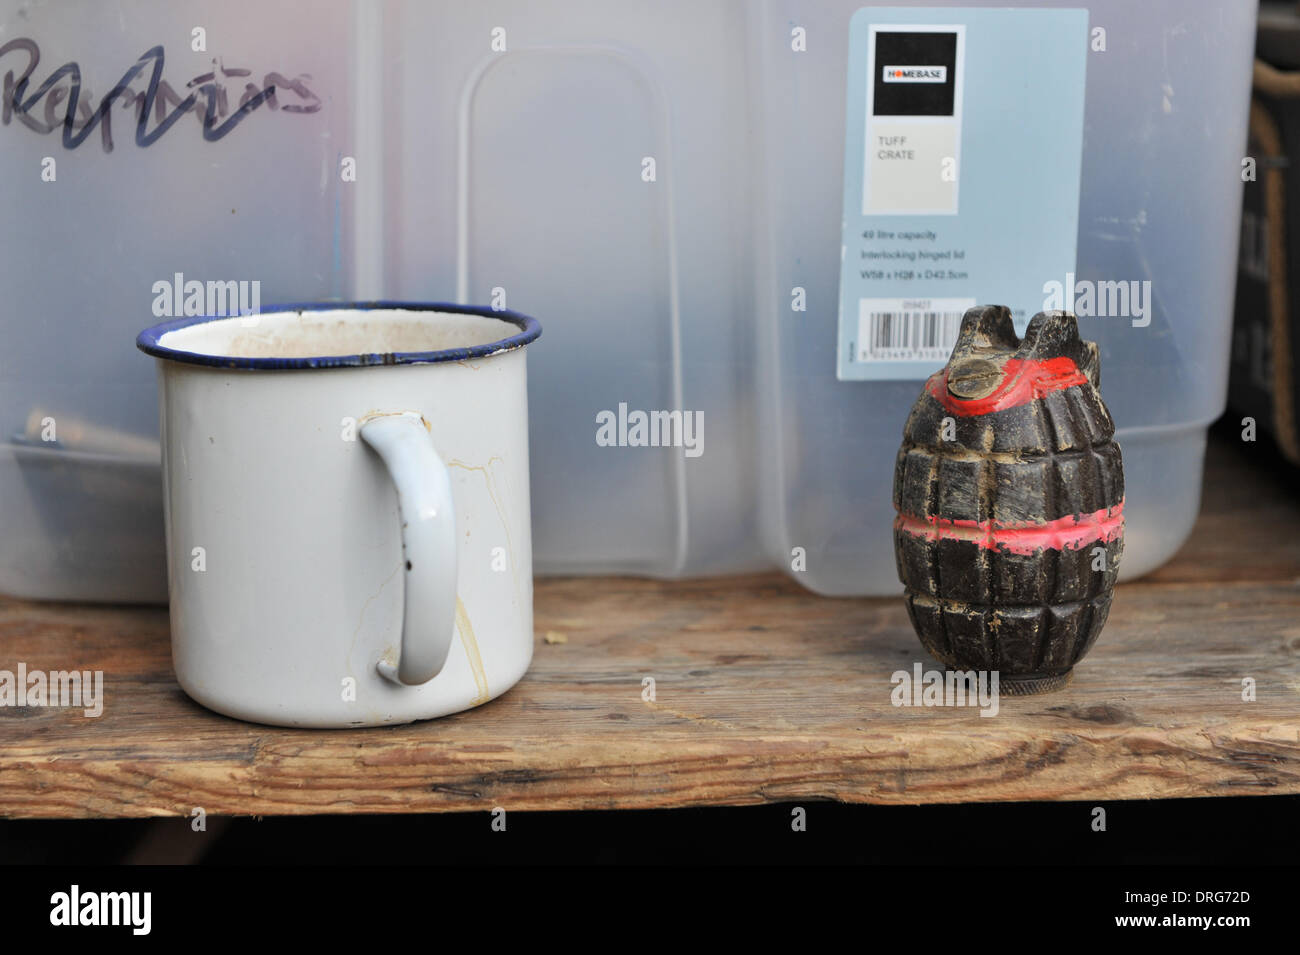 Charlwood, Surrey, UK. 25th January 2014. A Mills Hand Grenade and an enamel mug at the Trench. Credit:  Matthew Chattle/Alamy Live News - Stock Image